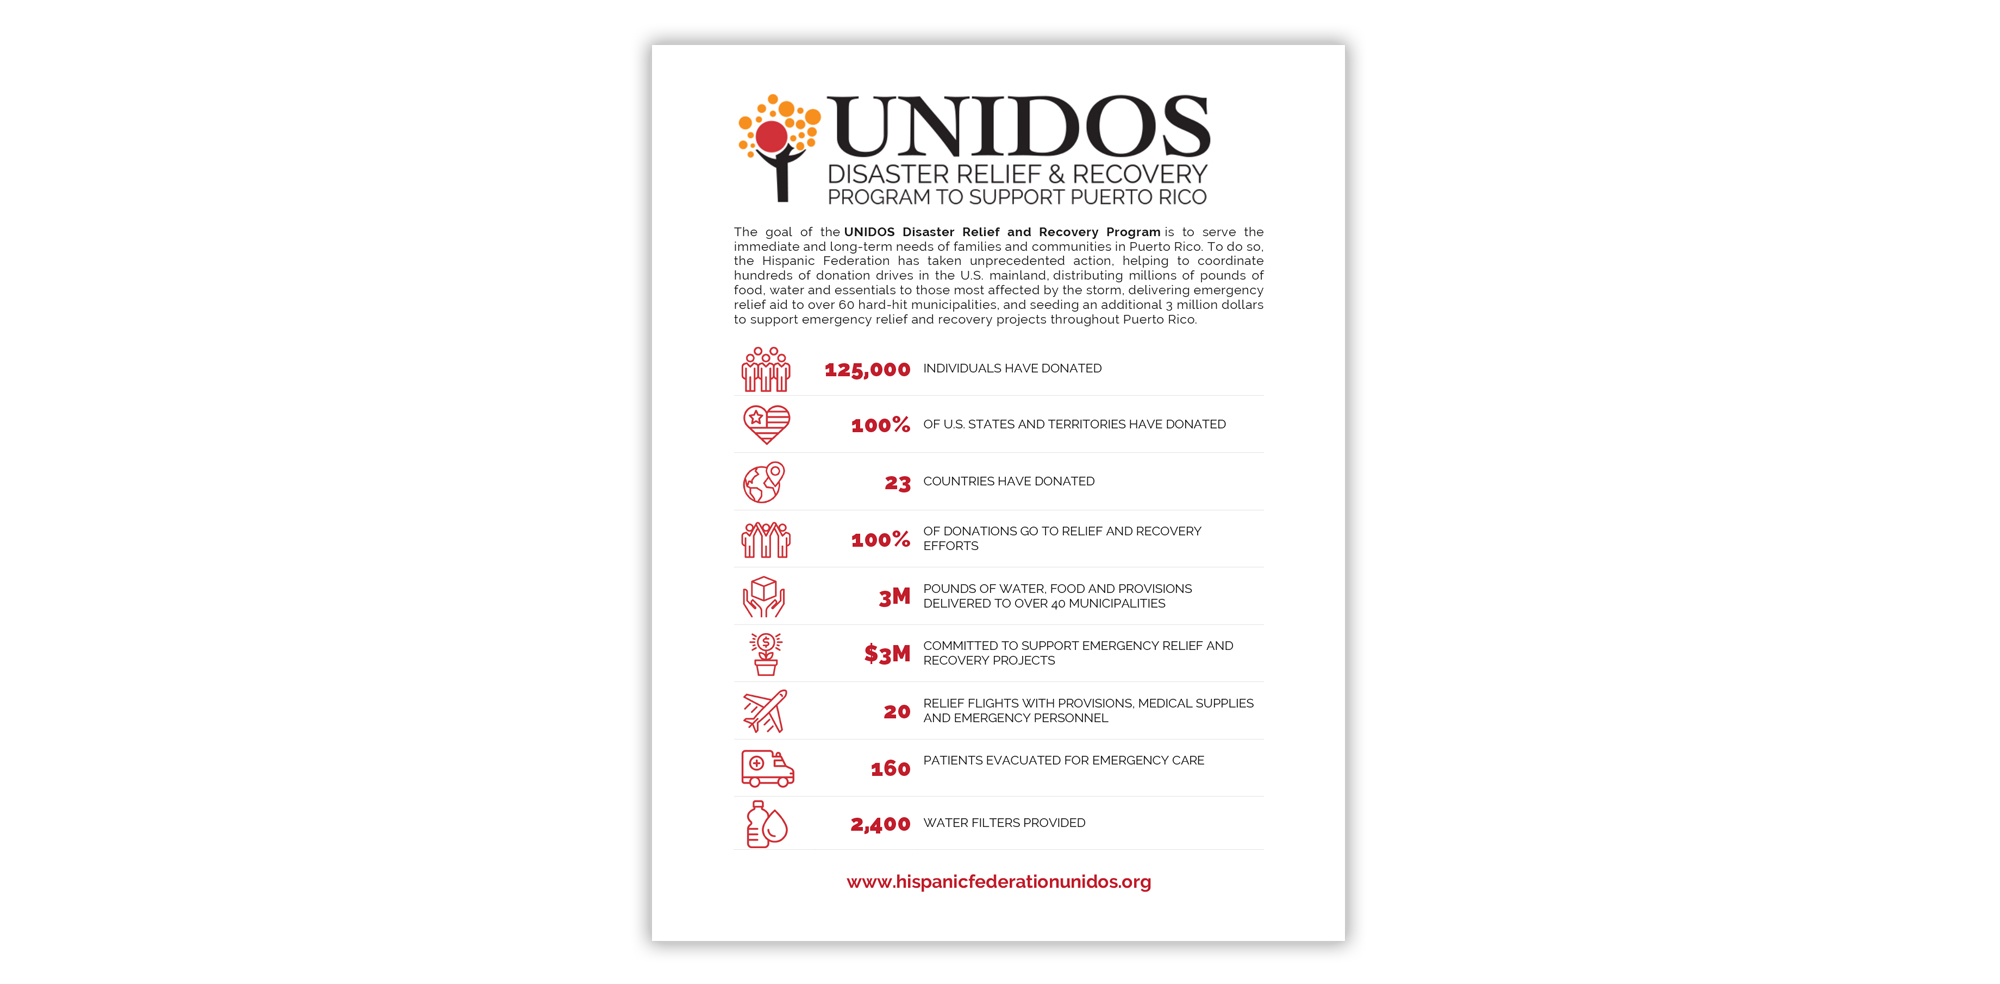 Downloadable factsheet highlighting the major achievements of UNIDOS Disaster Relief